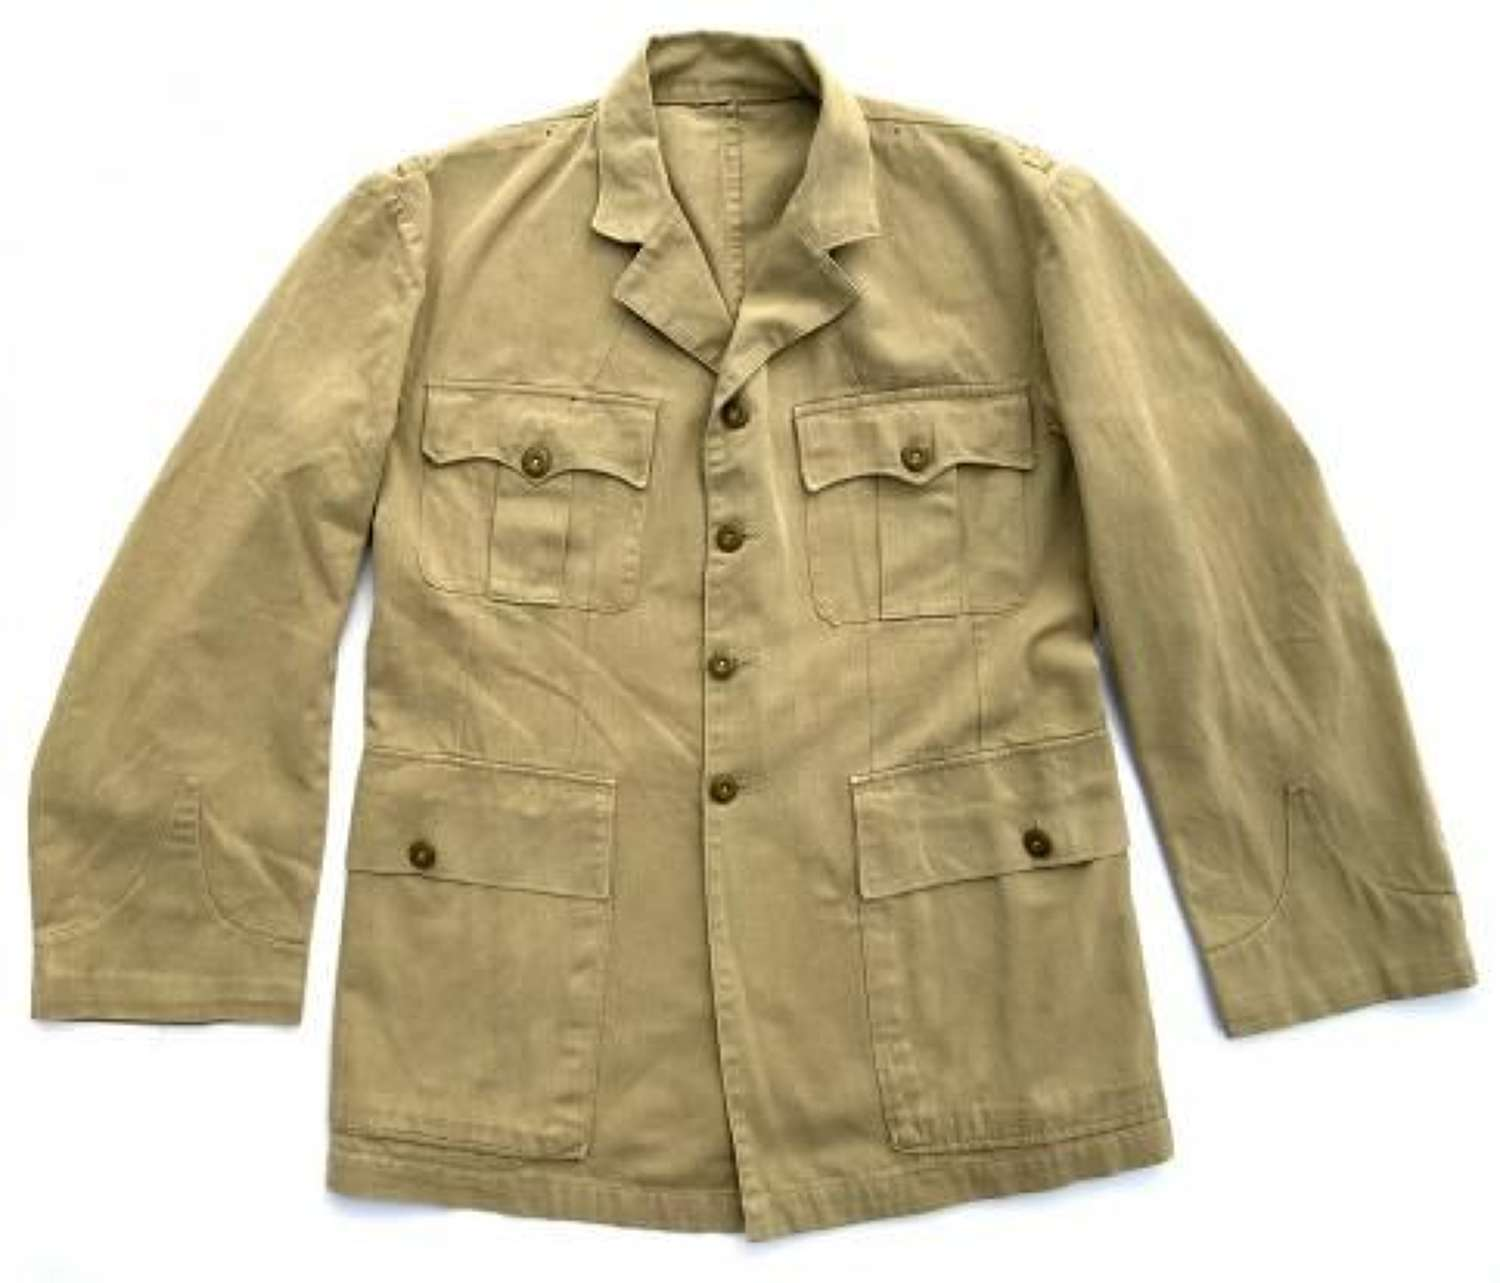 Original 1940s British Officers RAF Style Khaki Drill Tunic